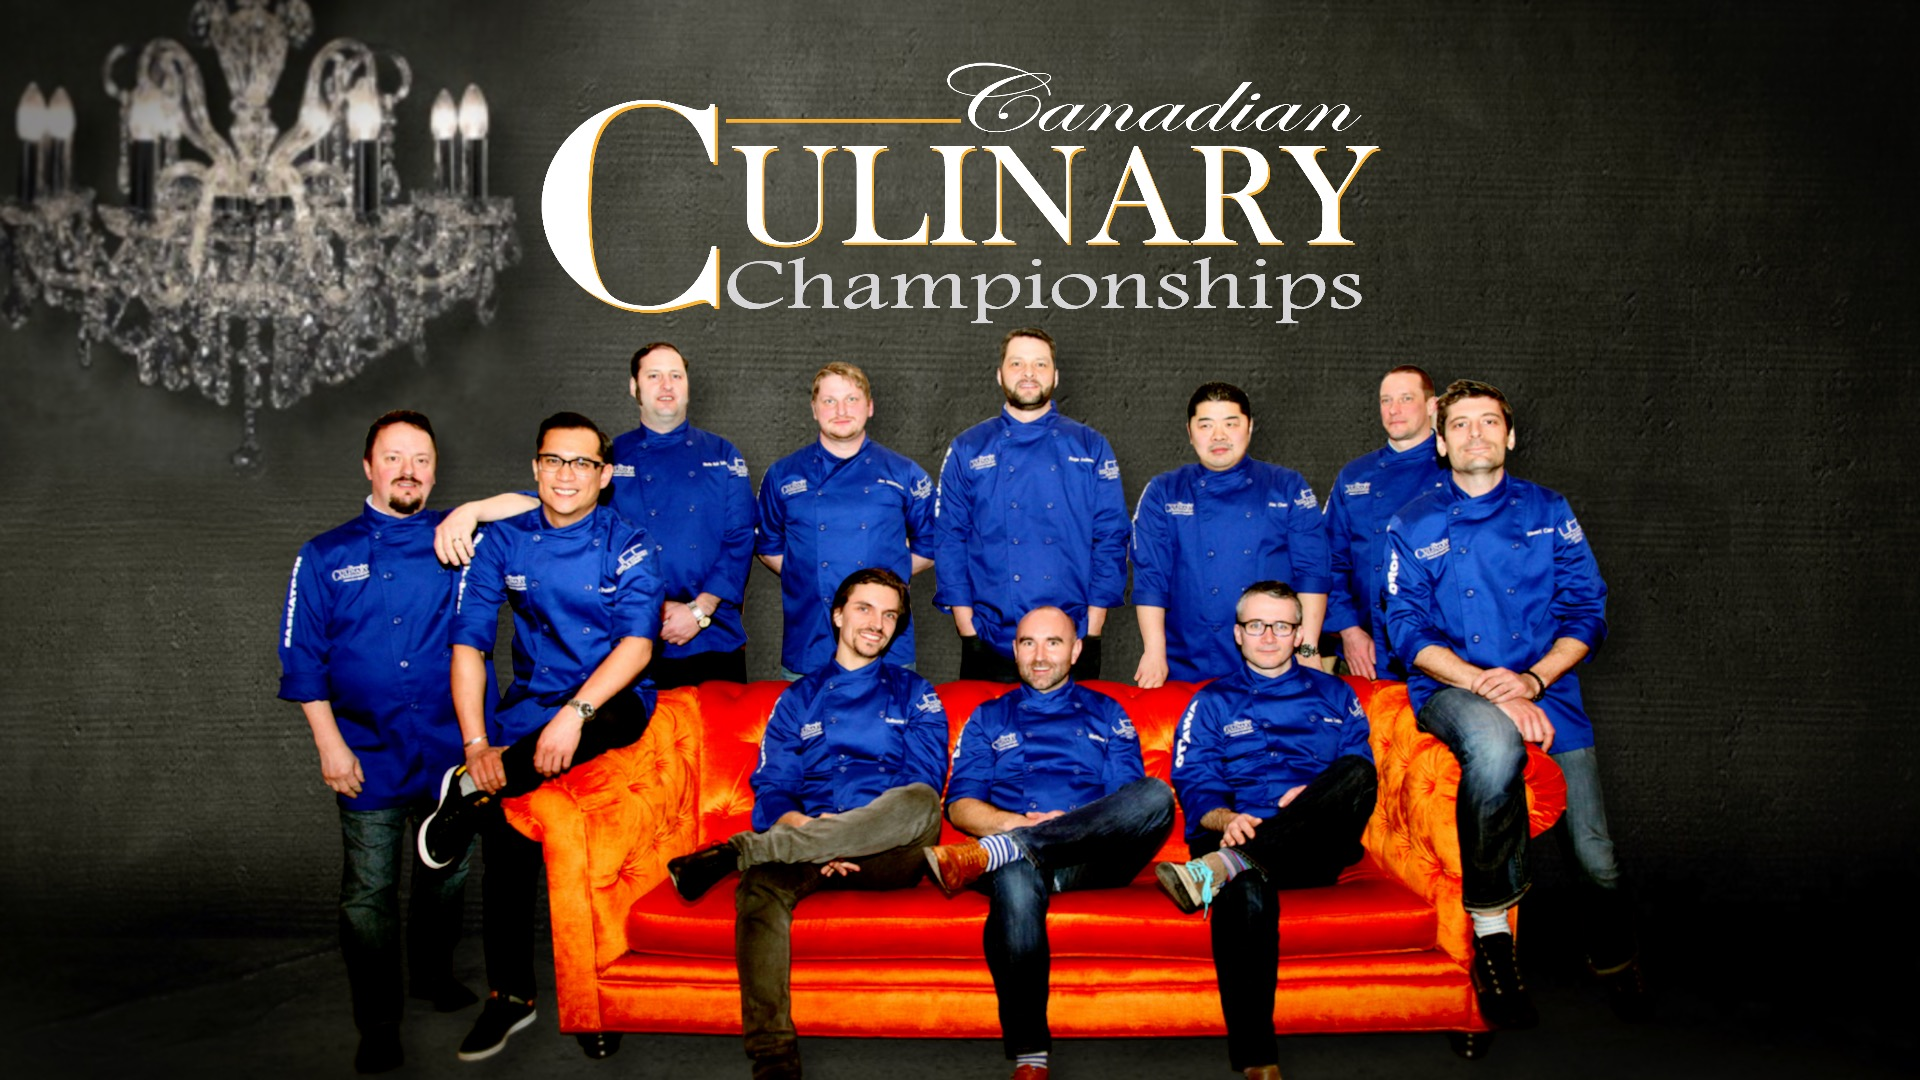 11 Chefs 3 Events 1 Champion